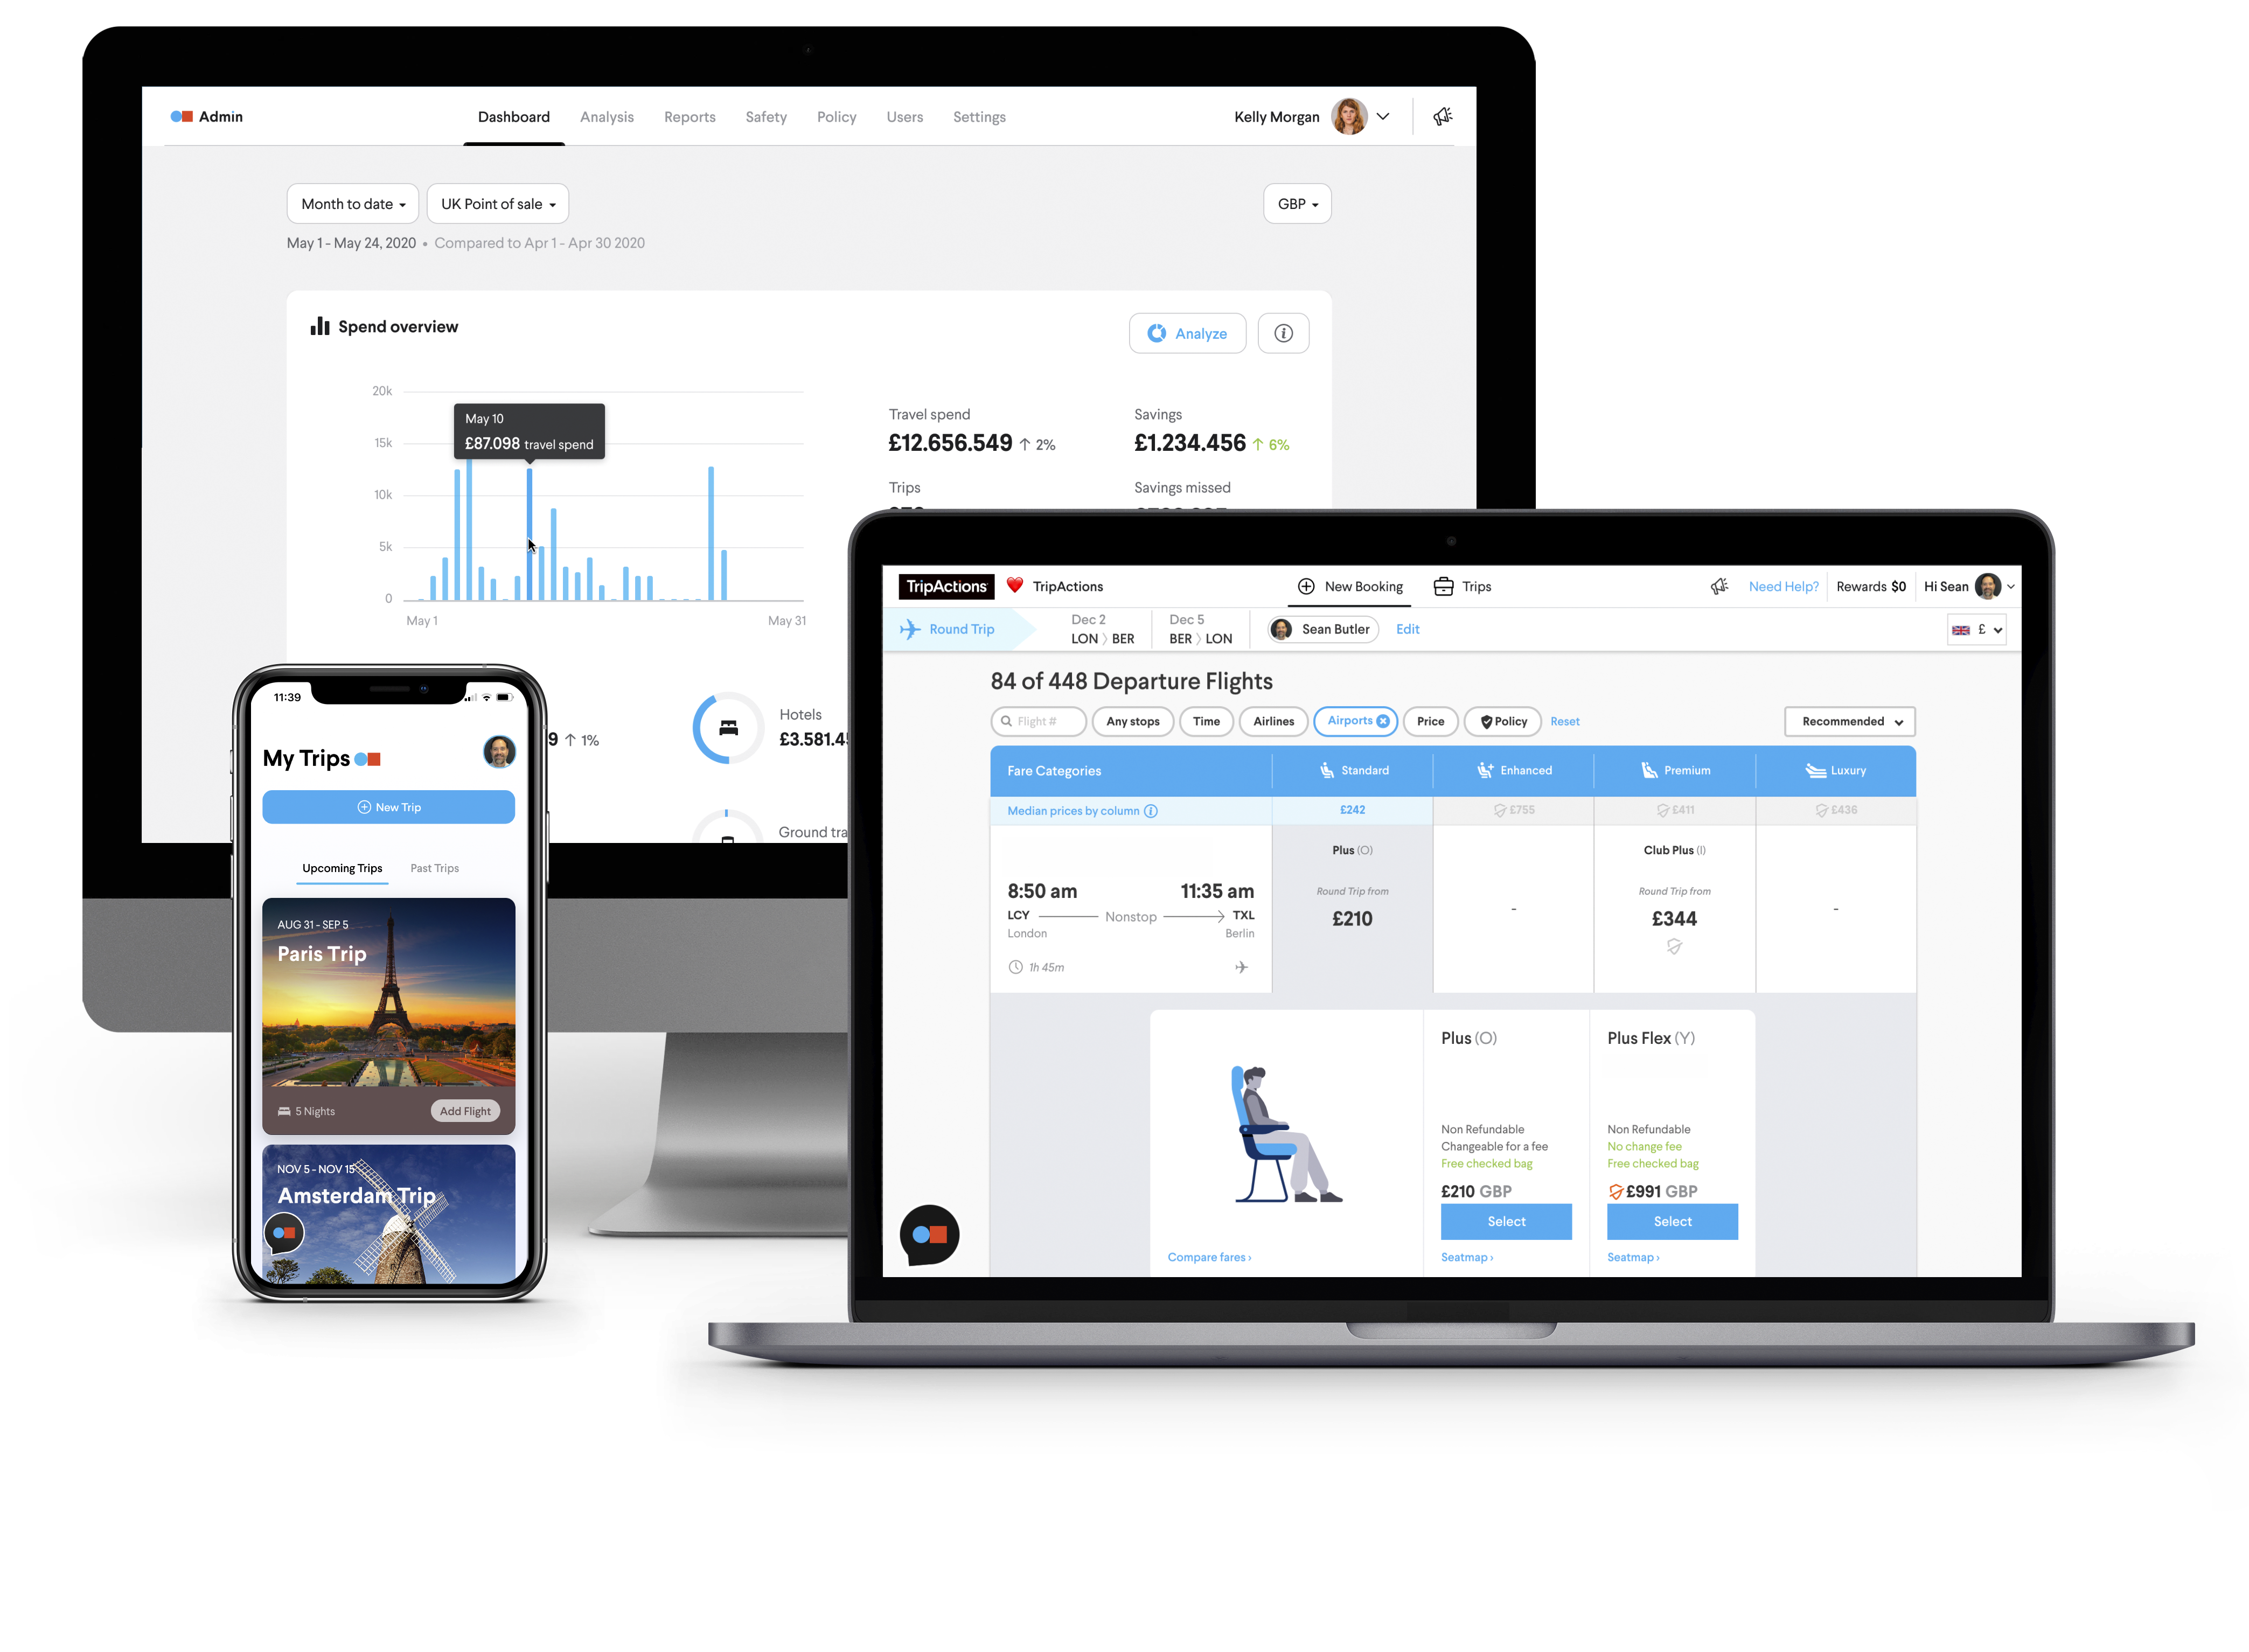 TripActions Product Screenshot - Travel managers get the tools to build and manage a travel program